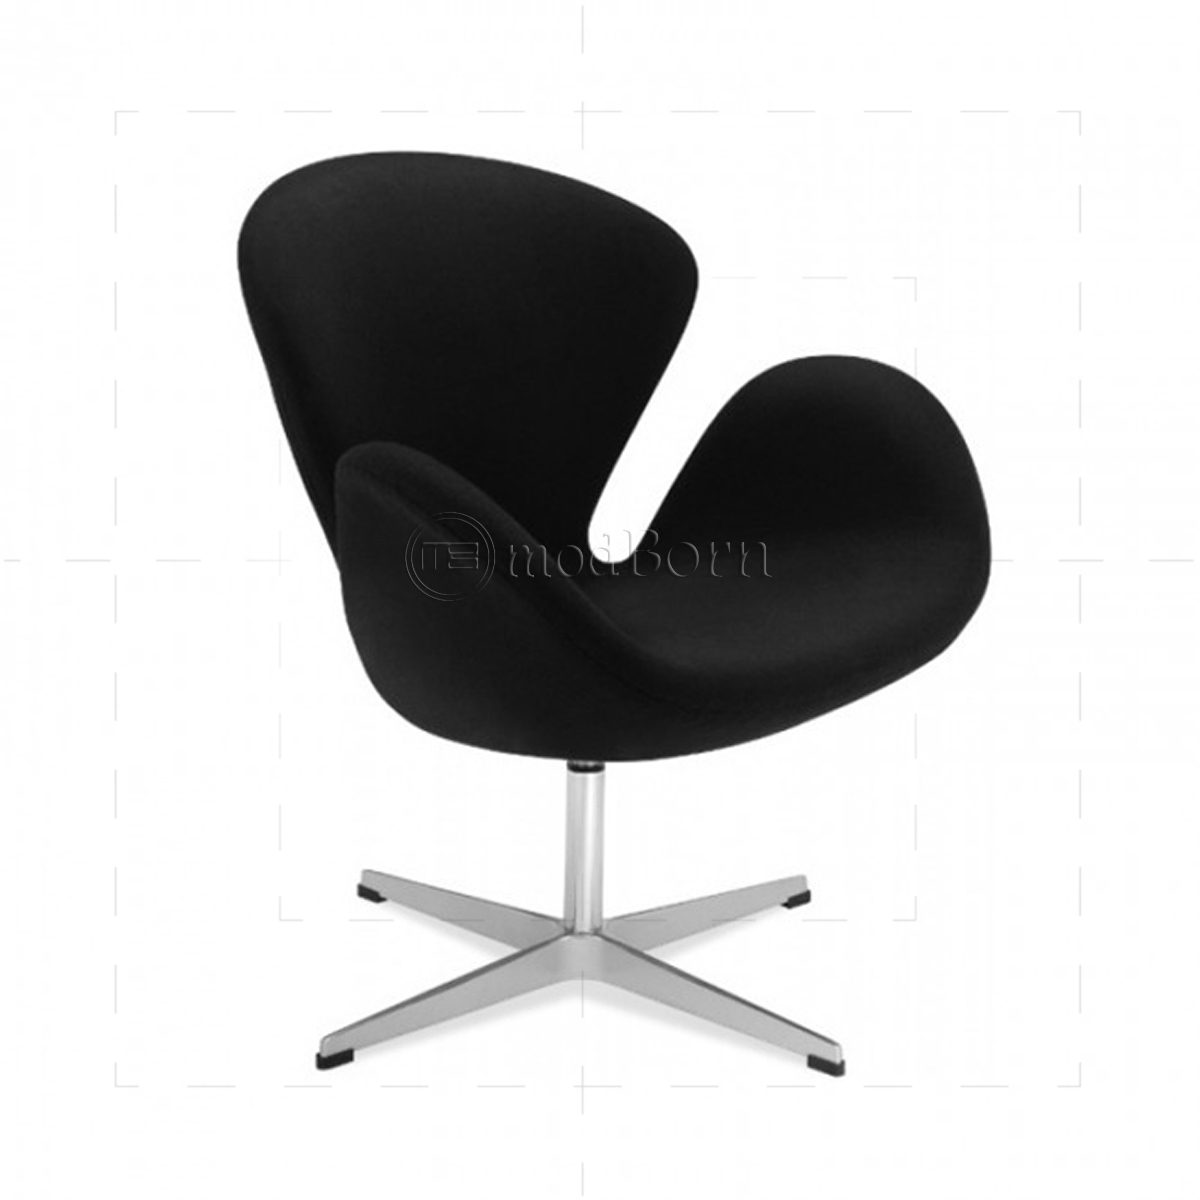 Arne jacobsen style swan chair black cashmere wool replica for Jacobsen replica